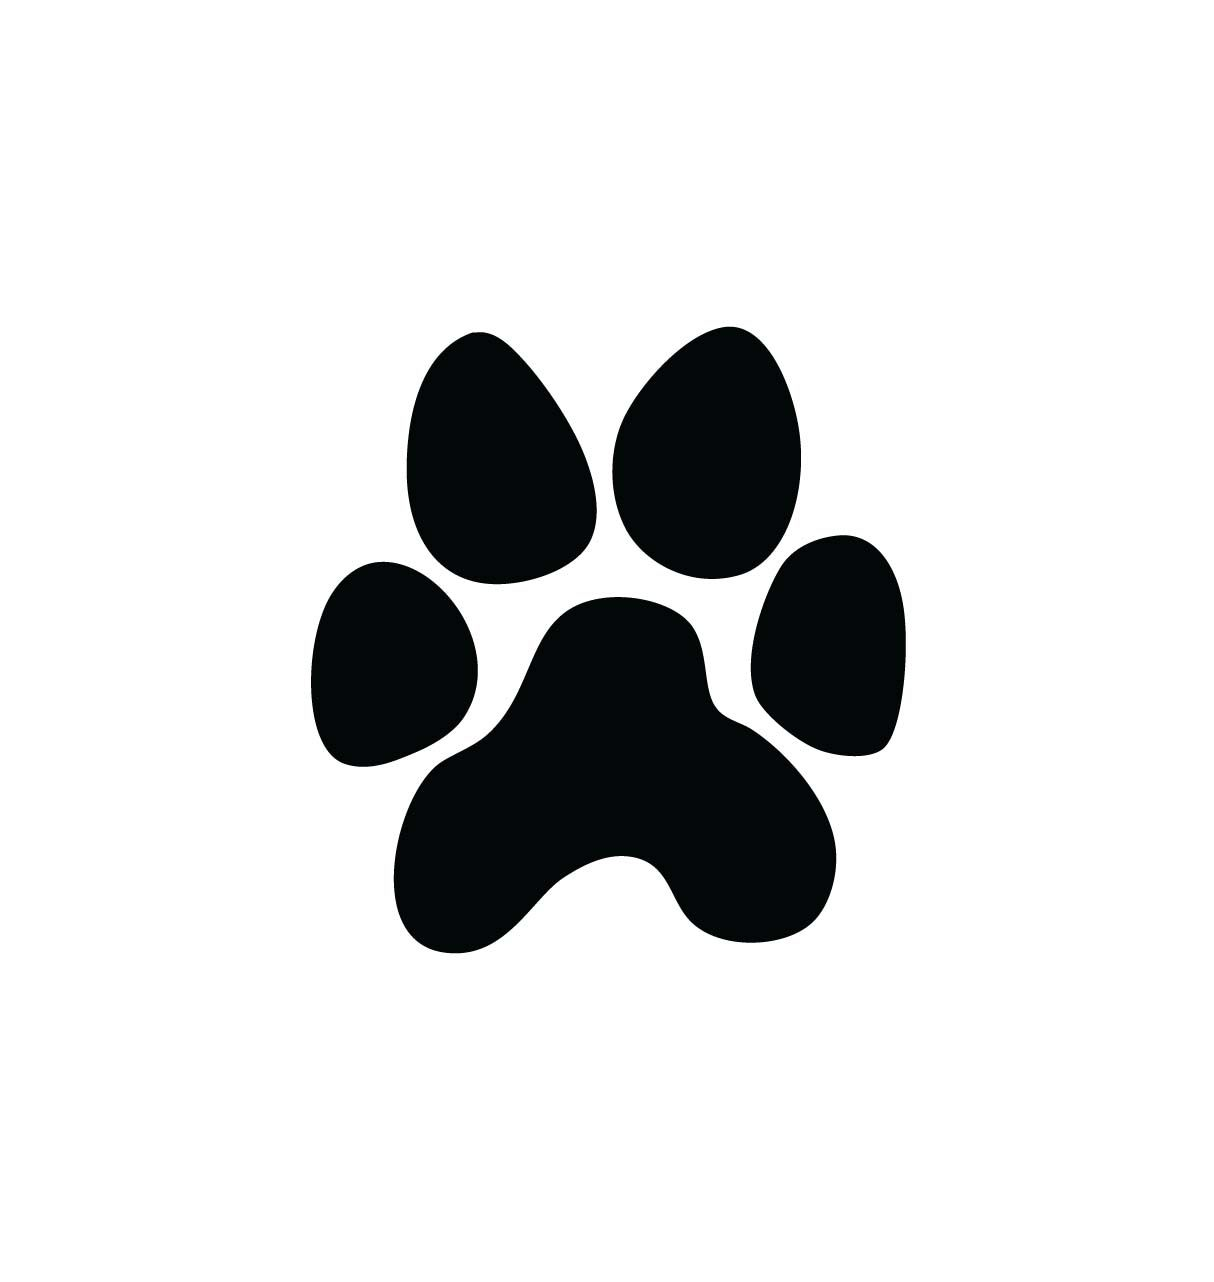 Dog paw gallery for cat clip art paw print image #19254.